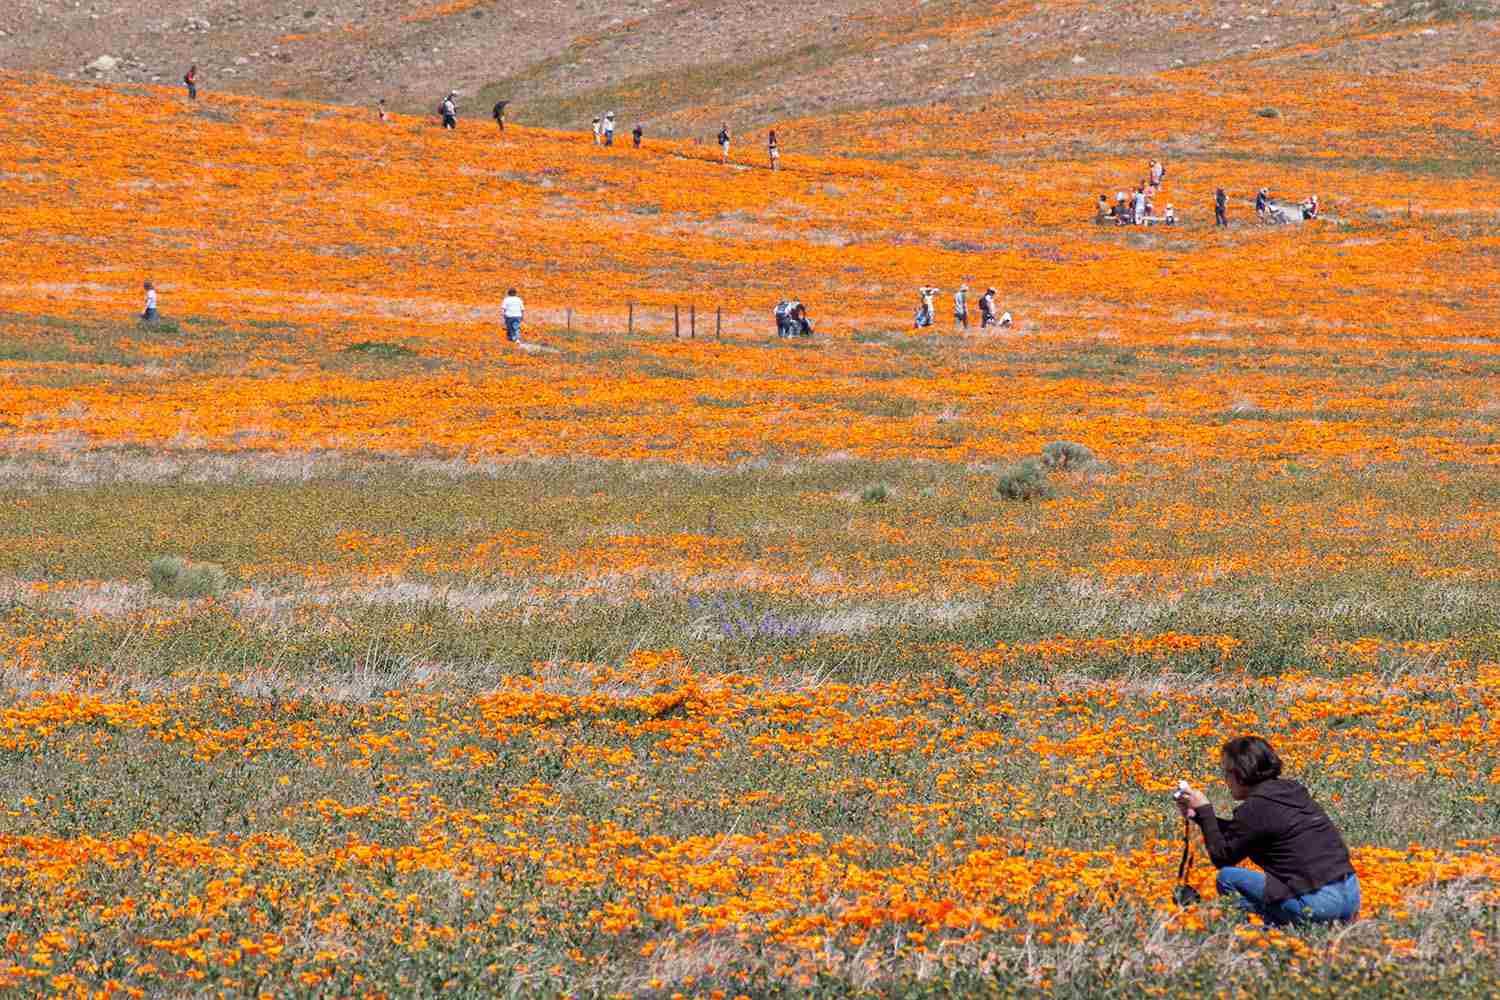 Antelope Valley Poppy Reserve: What to Know About It